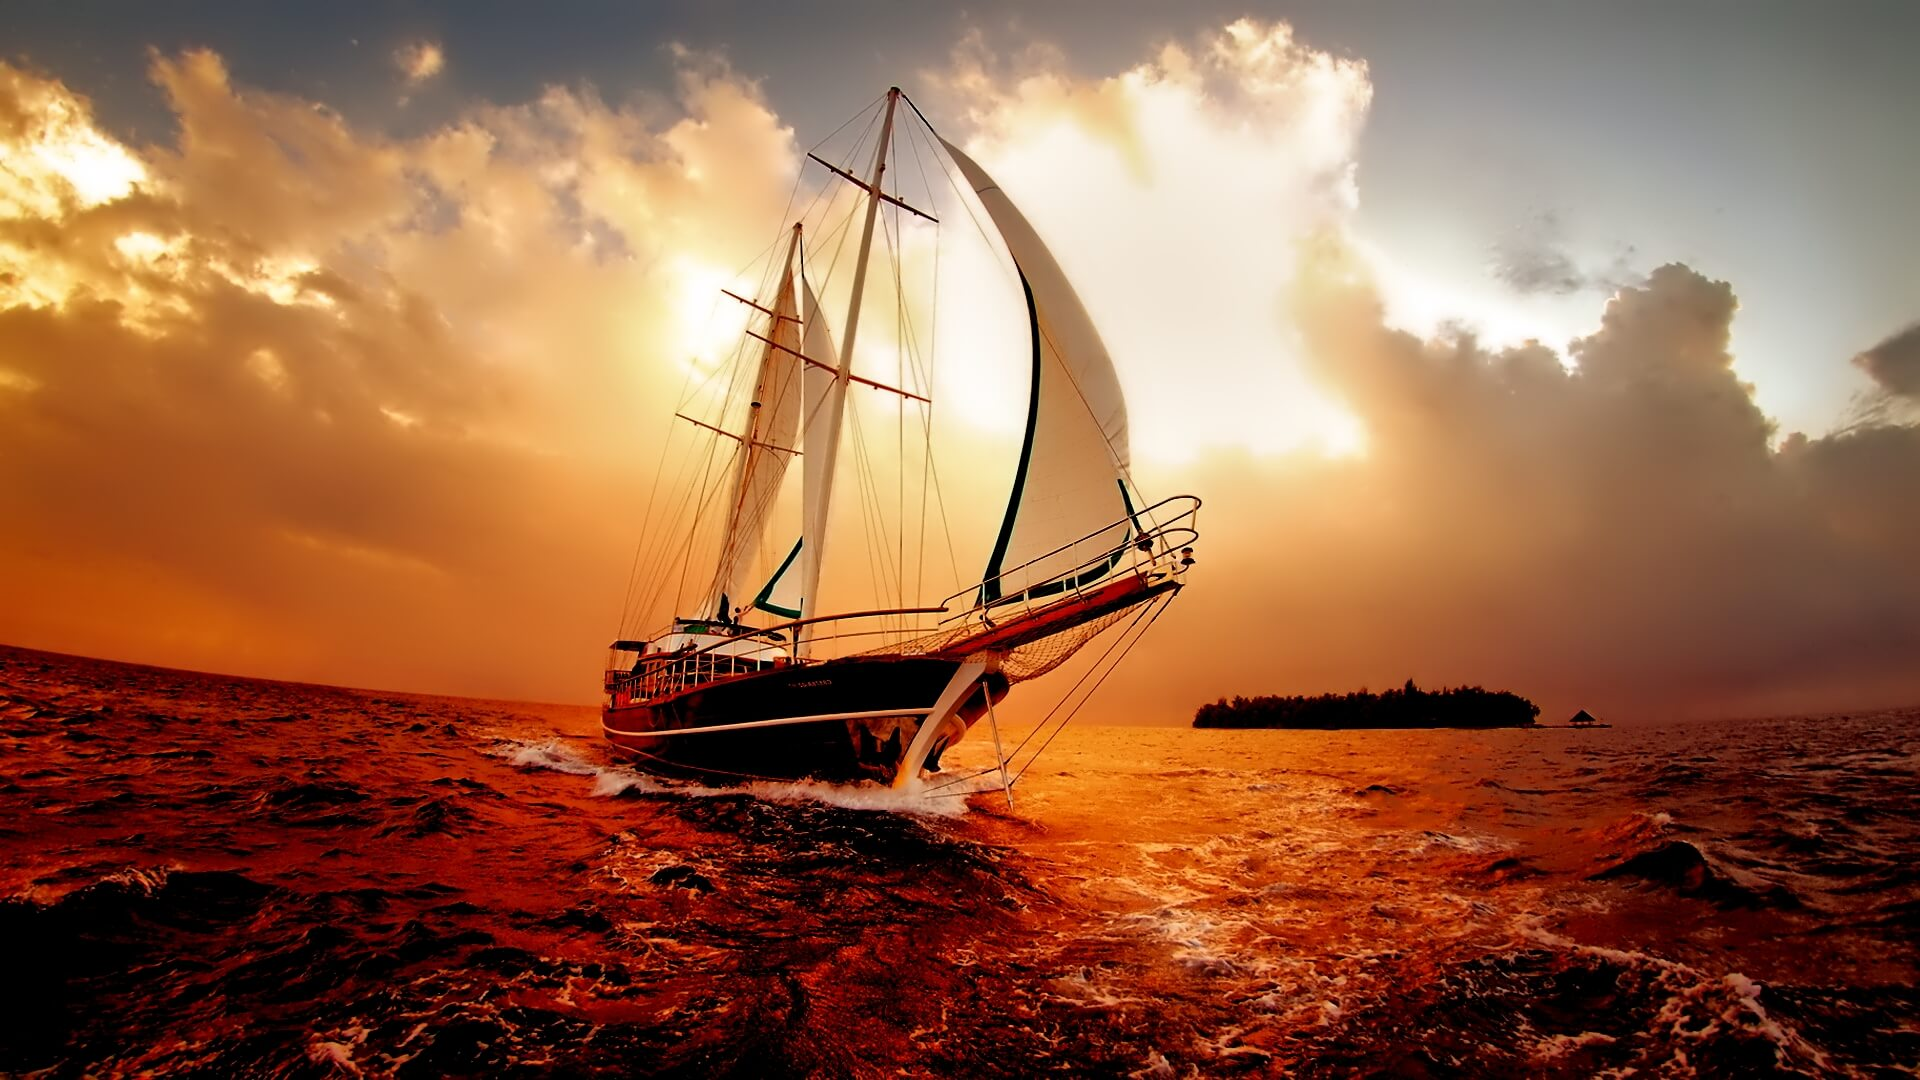 amazing-sailboats-hd-wallpapers-new-fresh-desktop-background-sail-boat-ships-cool-images-2-2